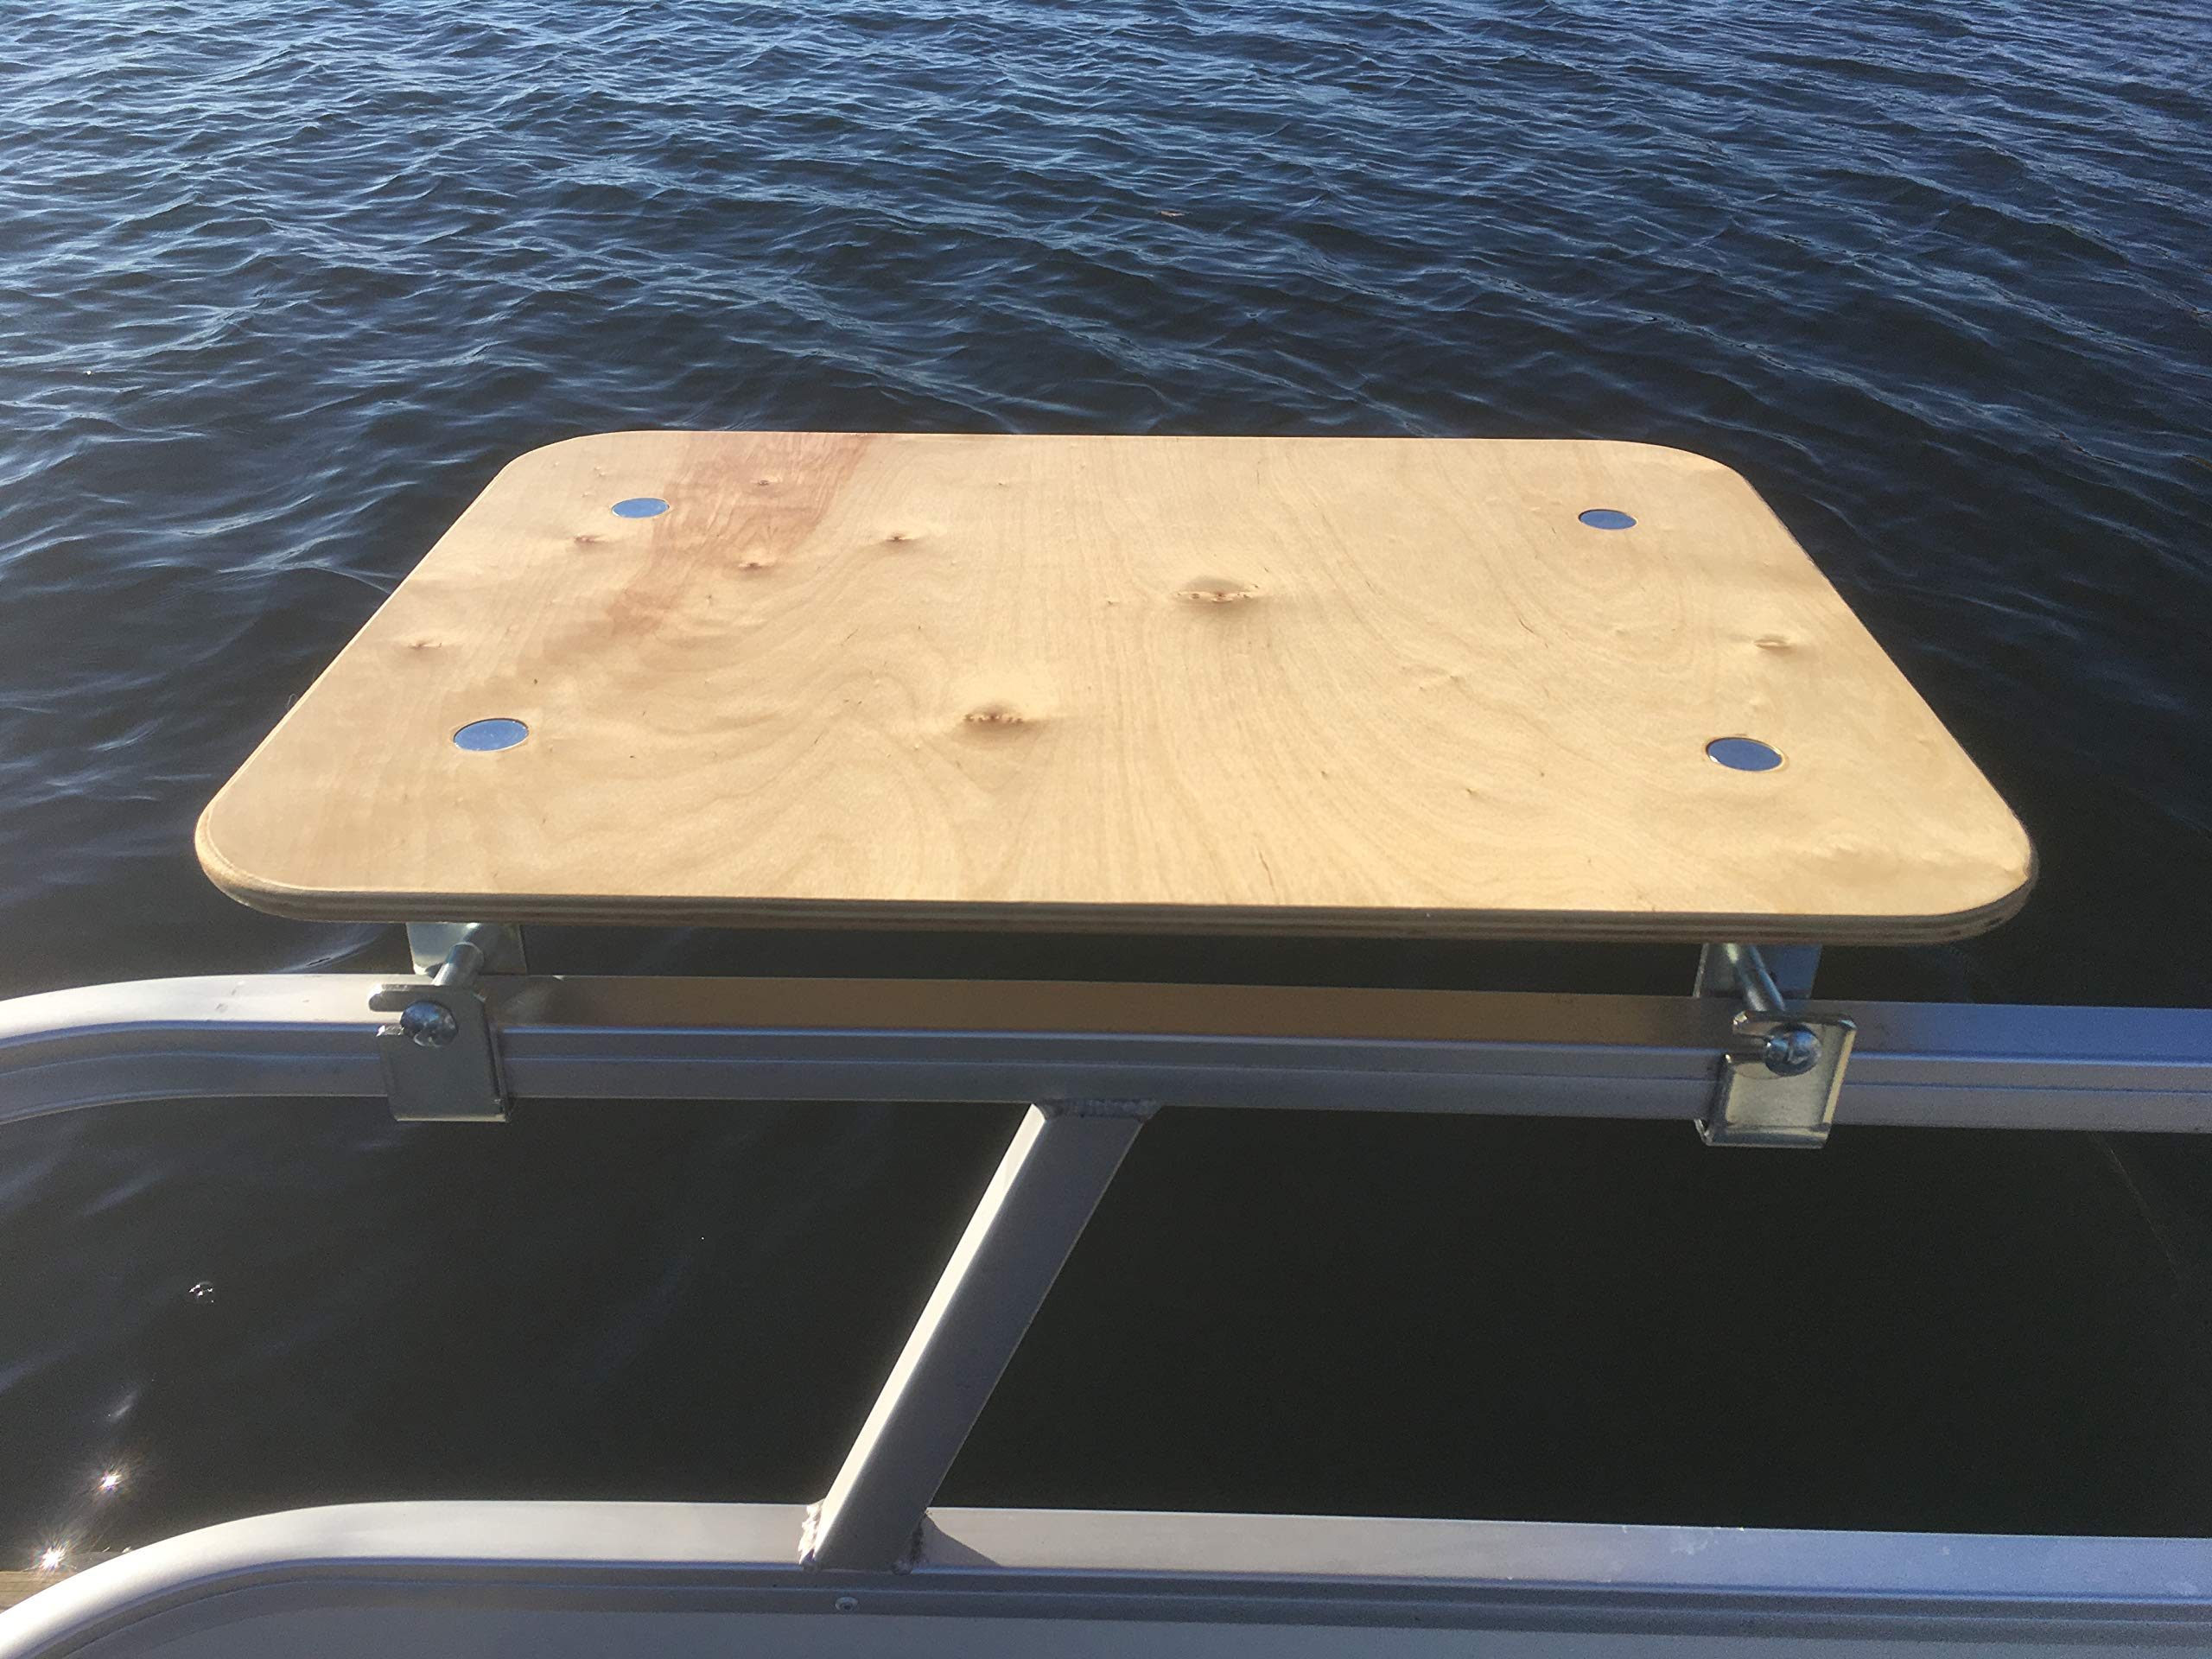 Arnalls Pontoon Boat Table - Boat & Marine Grill Accessory - Perfect for Pontoon Boats - Bracket Set Table - Pontoon Accessory - Multi-Use Table - Essential Boating Accessory - Portable - Utility Bar by Arnalls